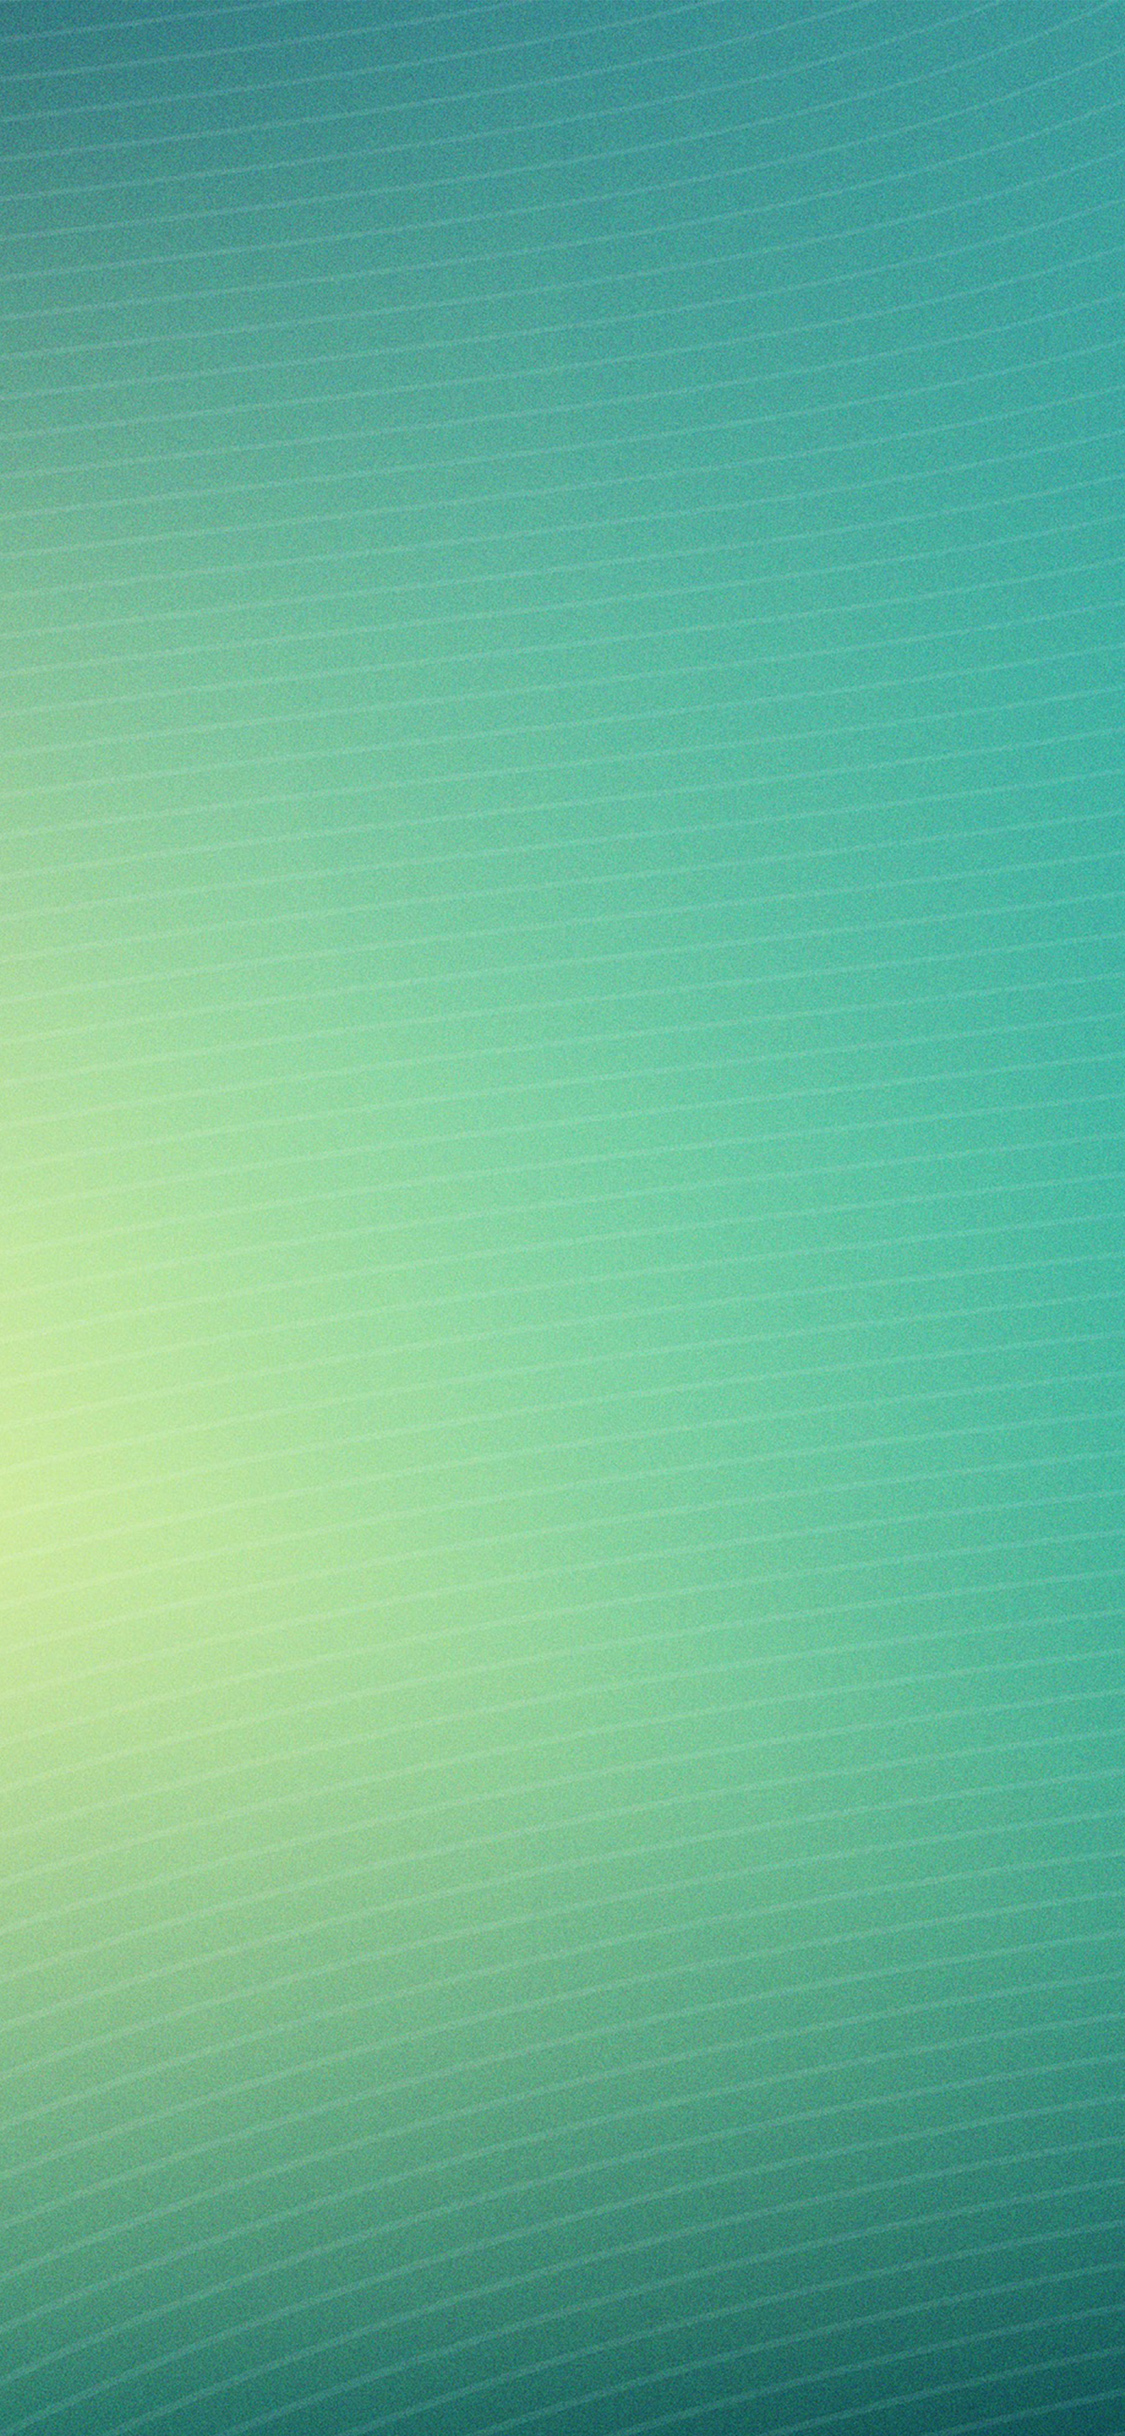 iPhoneXpapers.com-Apple-iPhone-wallpaper-vx89-curve-blue-green-pattern-background